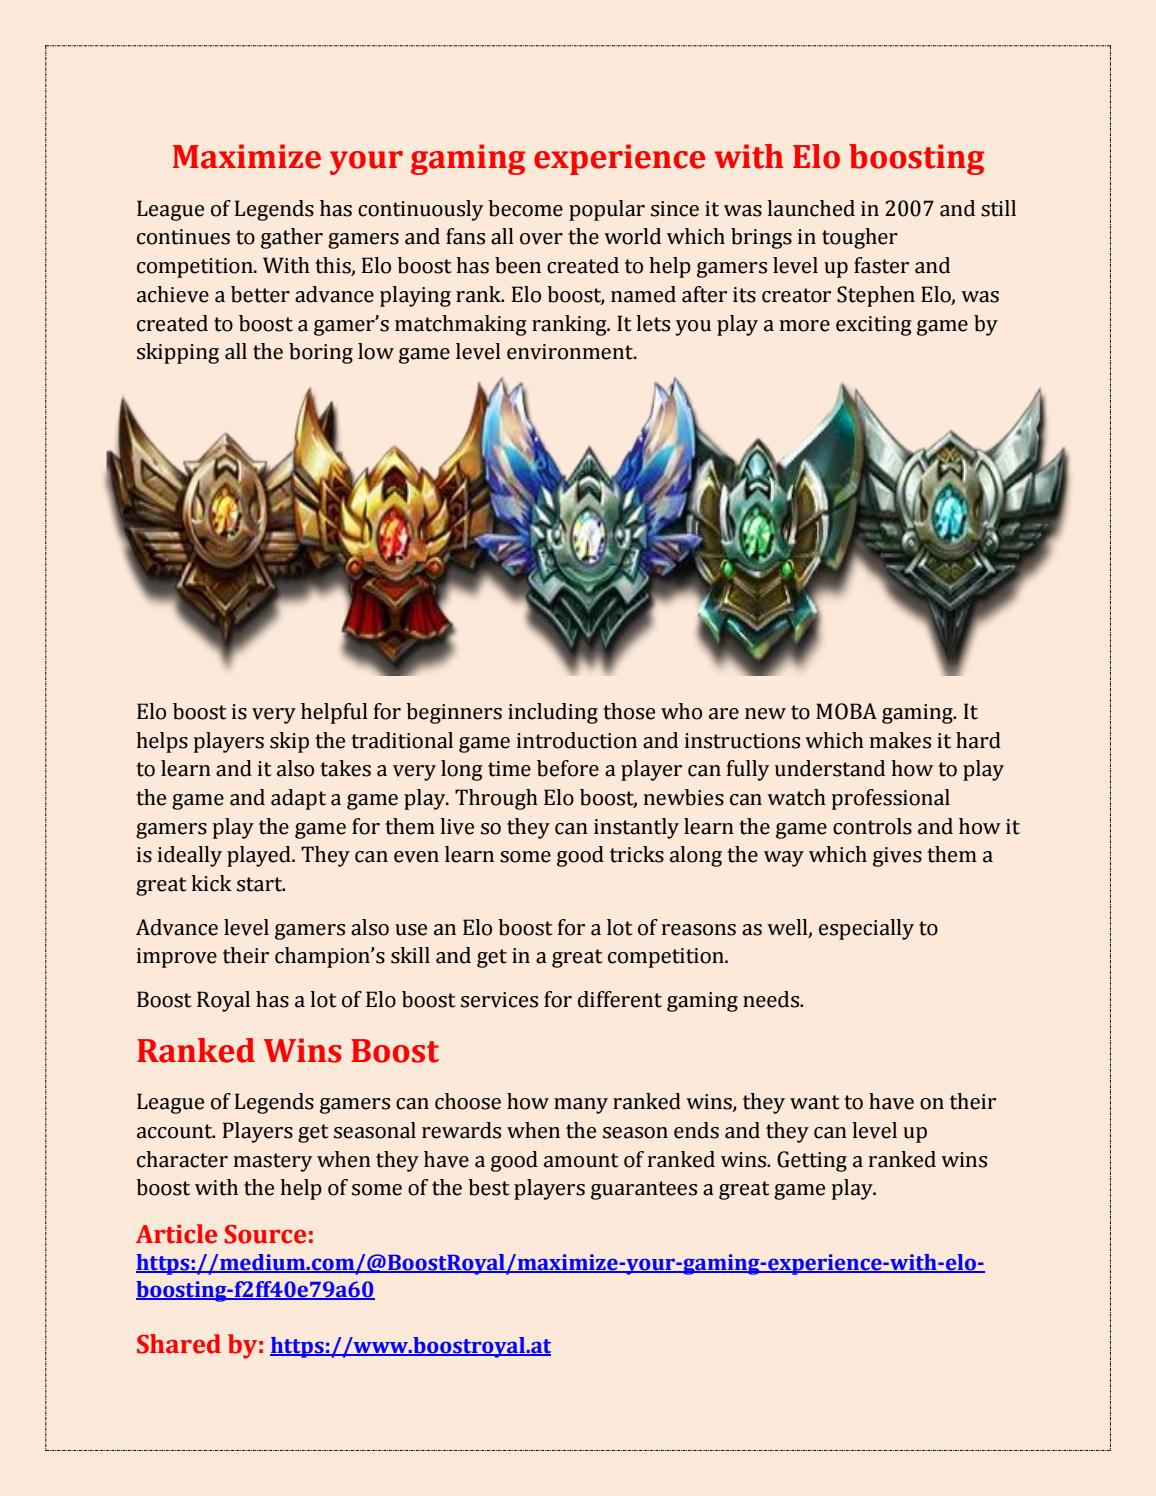 Maximize your gaming experience with elo boosting by Boost